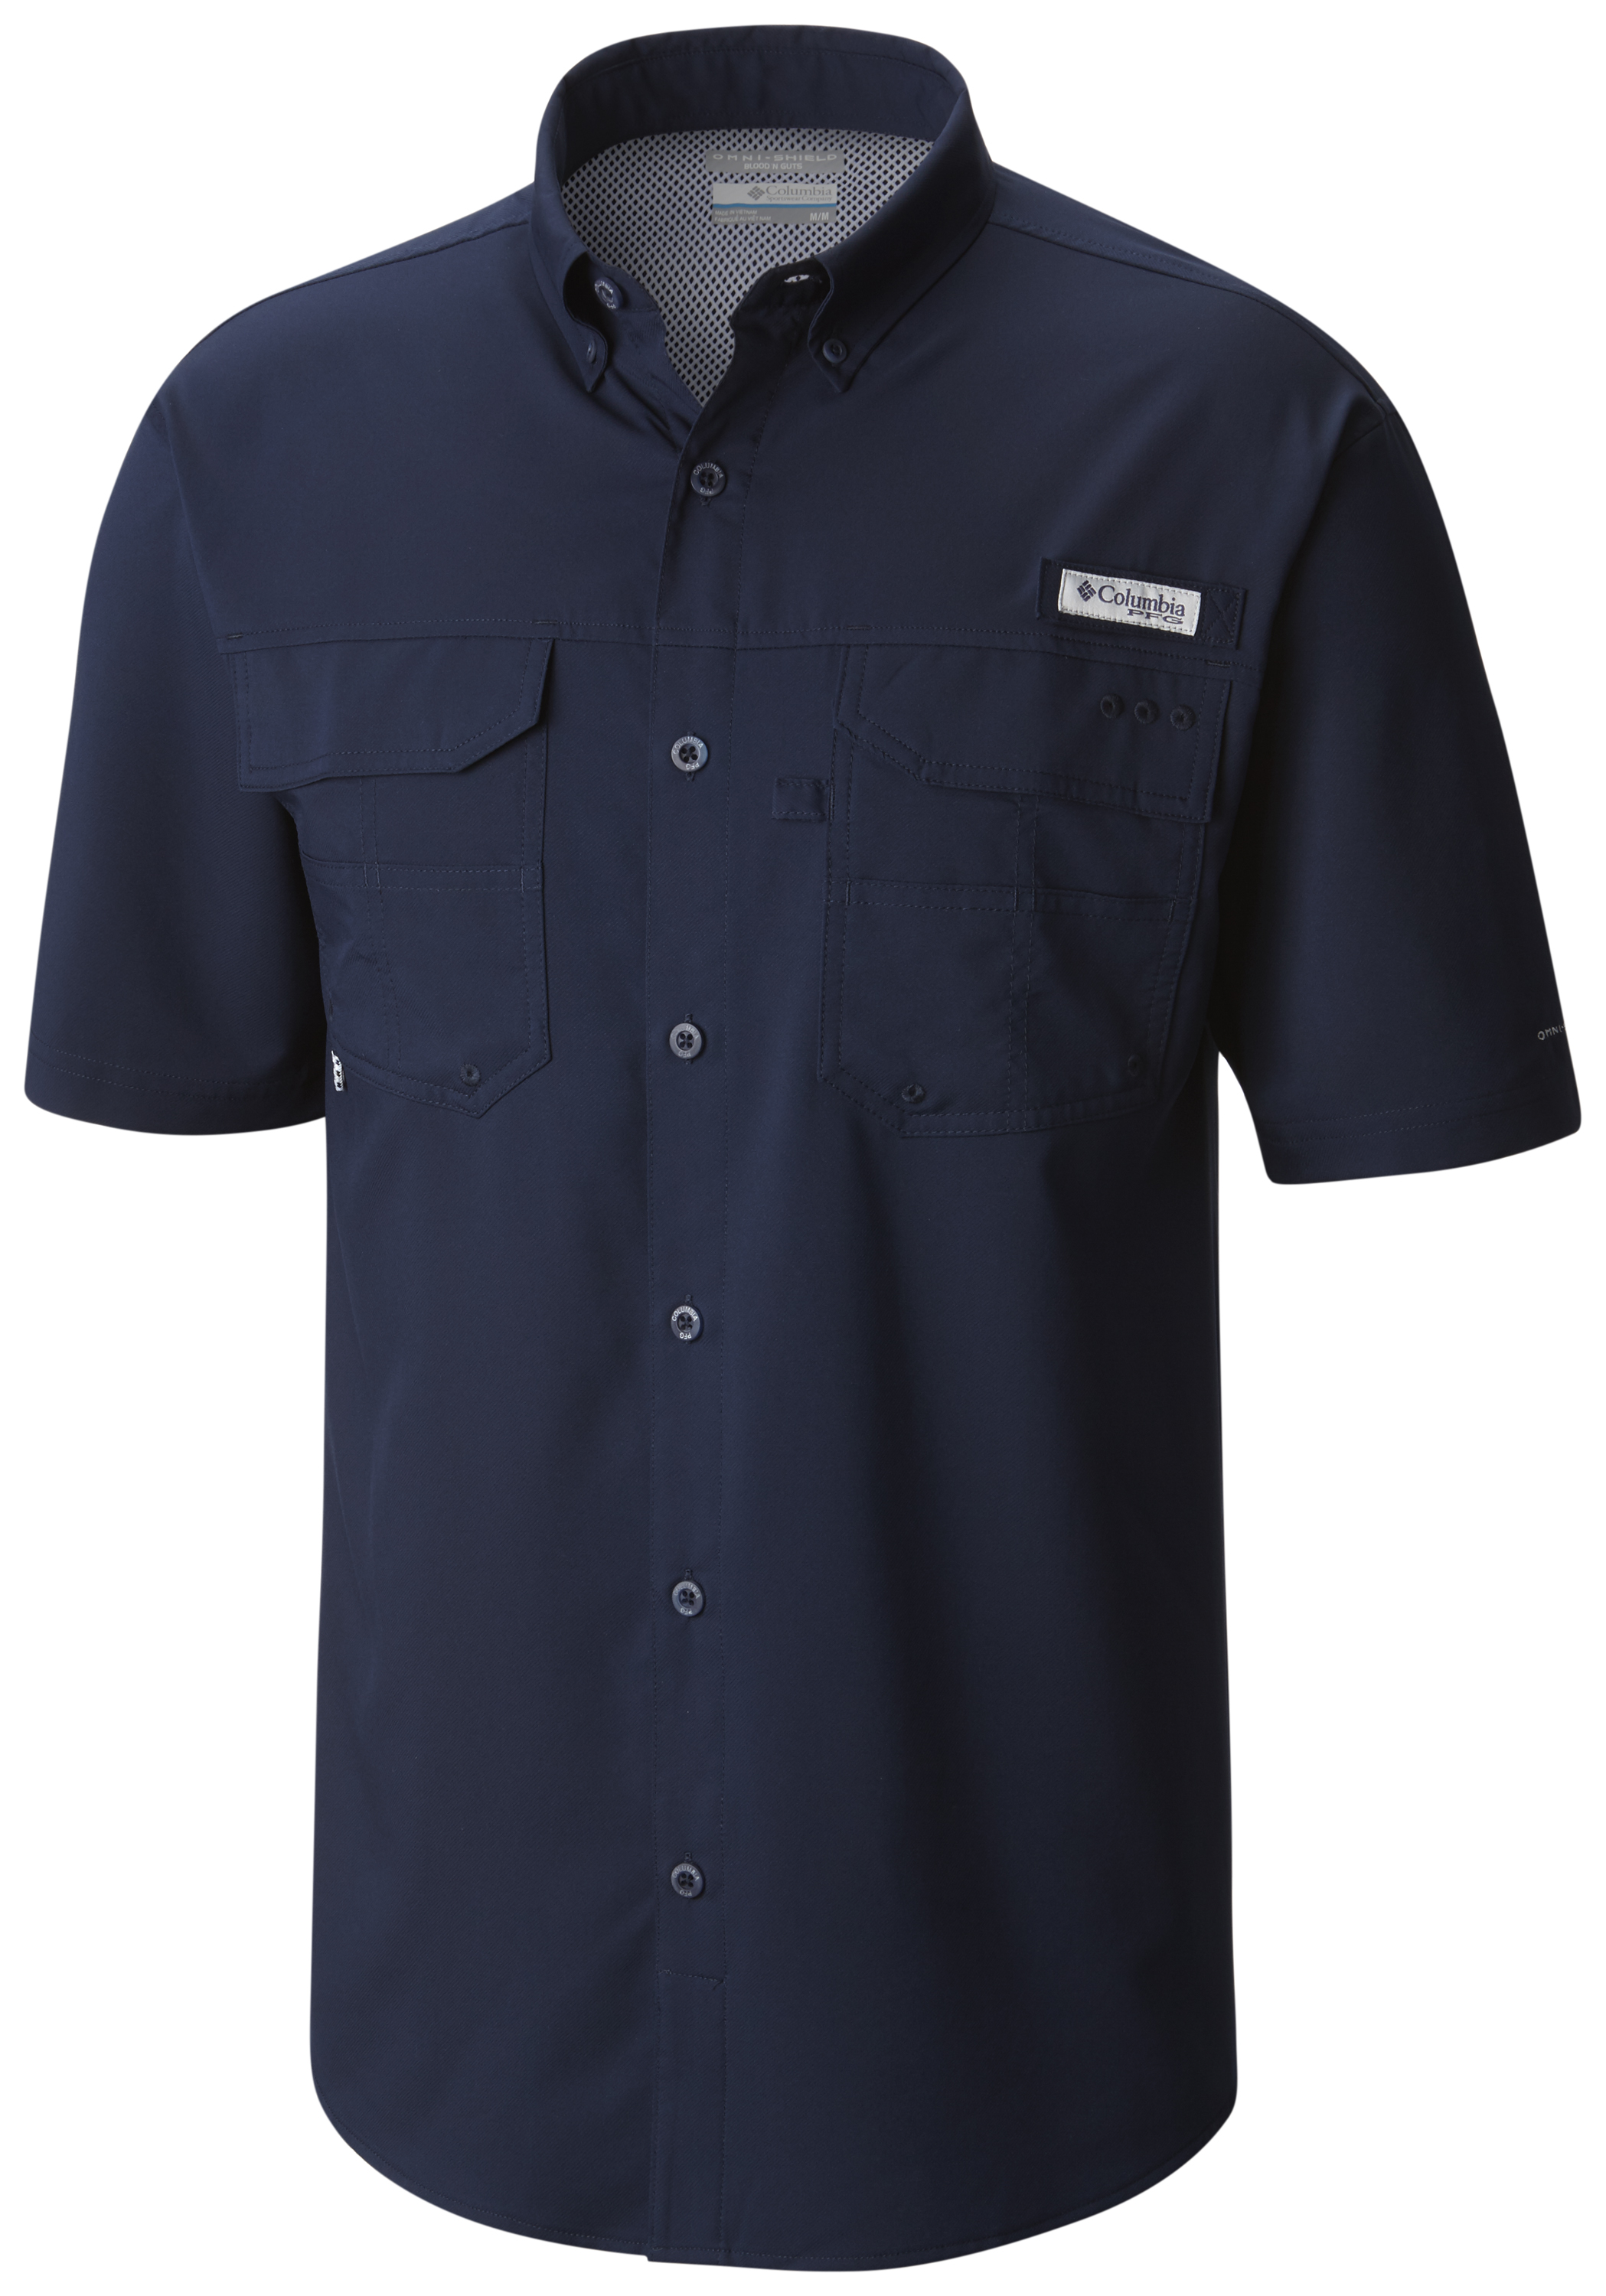 f194643ddbd ... CasualColumbia Sportswear Blood and Guts™ III Short Sleeve Shirt.  S18_1577221_683_f. S17_1577221_316_f. F16_1577221_487_f. S17_1577221_464_f